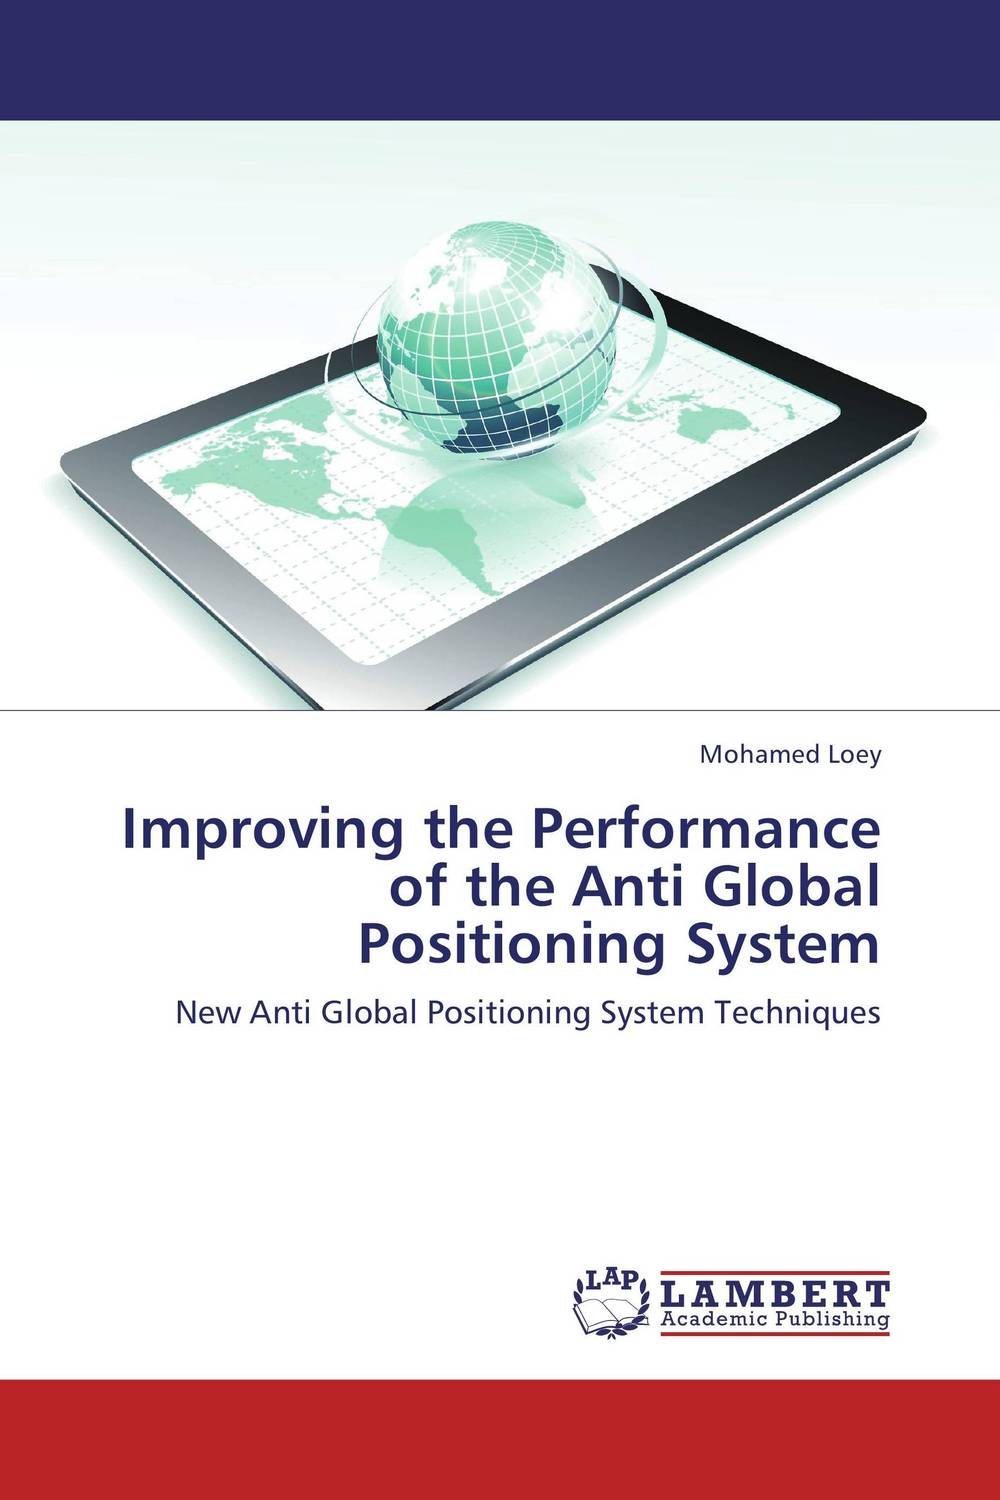 Improving the Performance of the Anti Global Positioning System the application of global ethics to solve local improprieties